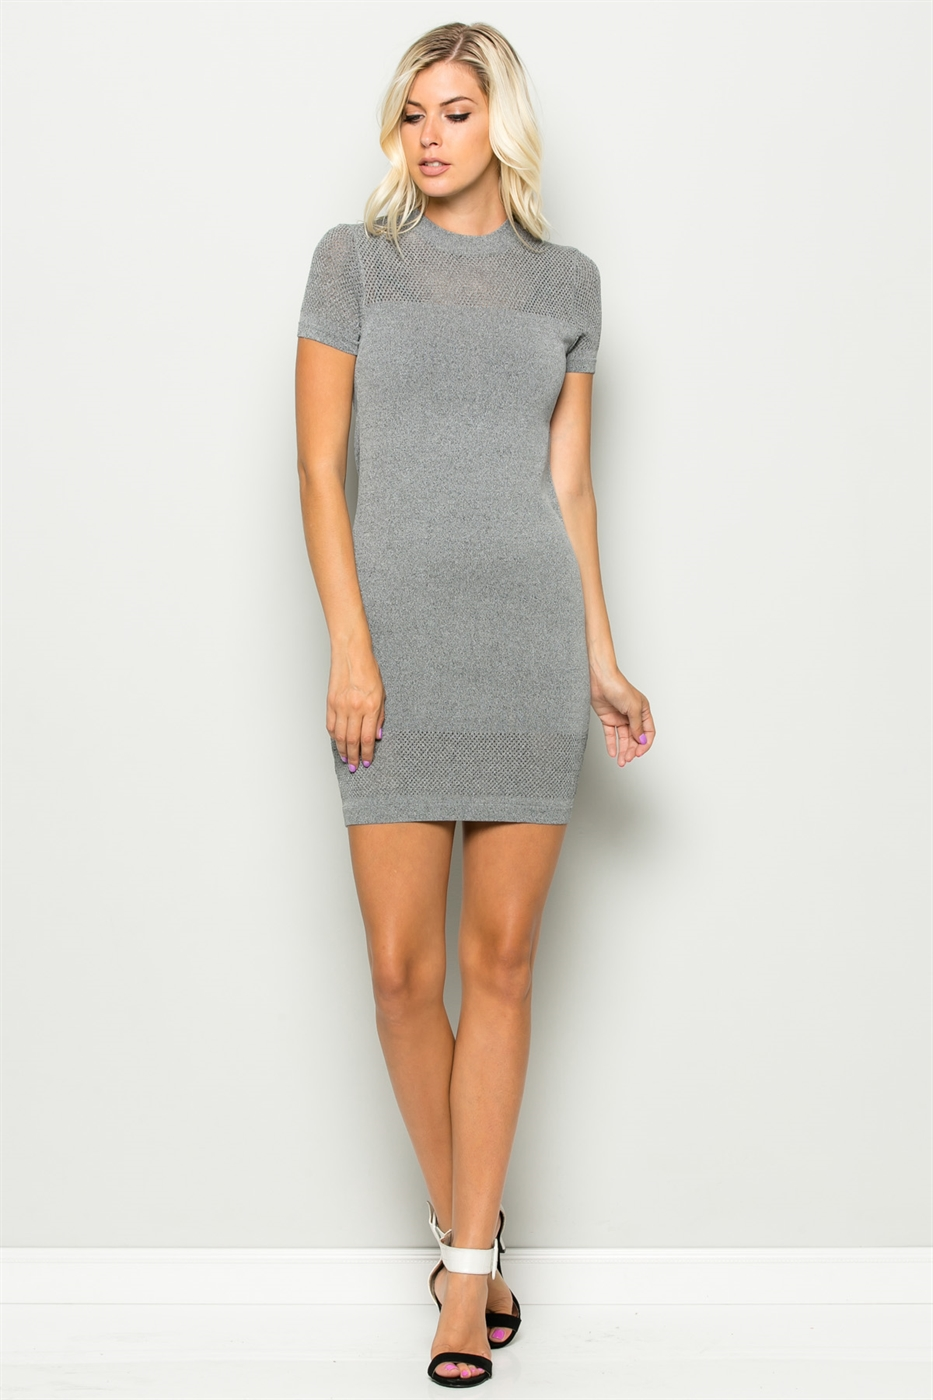 SUMMER WEIGHT KNIT DRESS - orangeshine.com